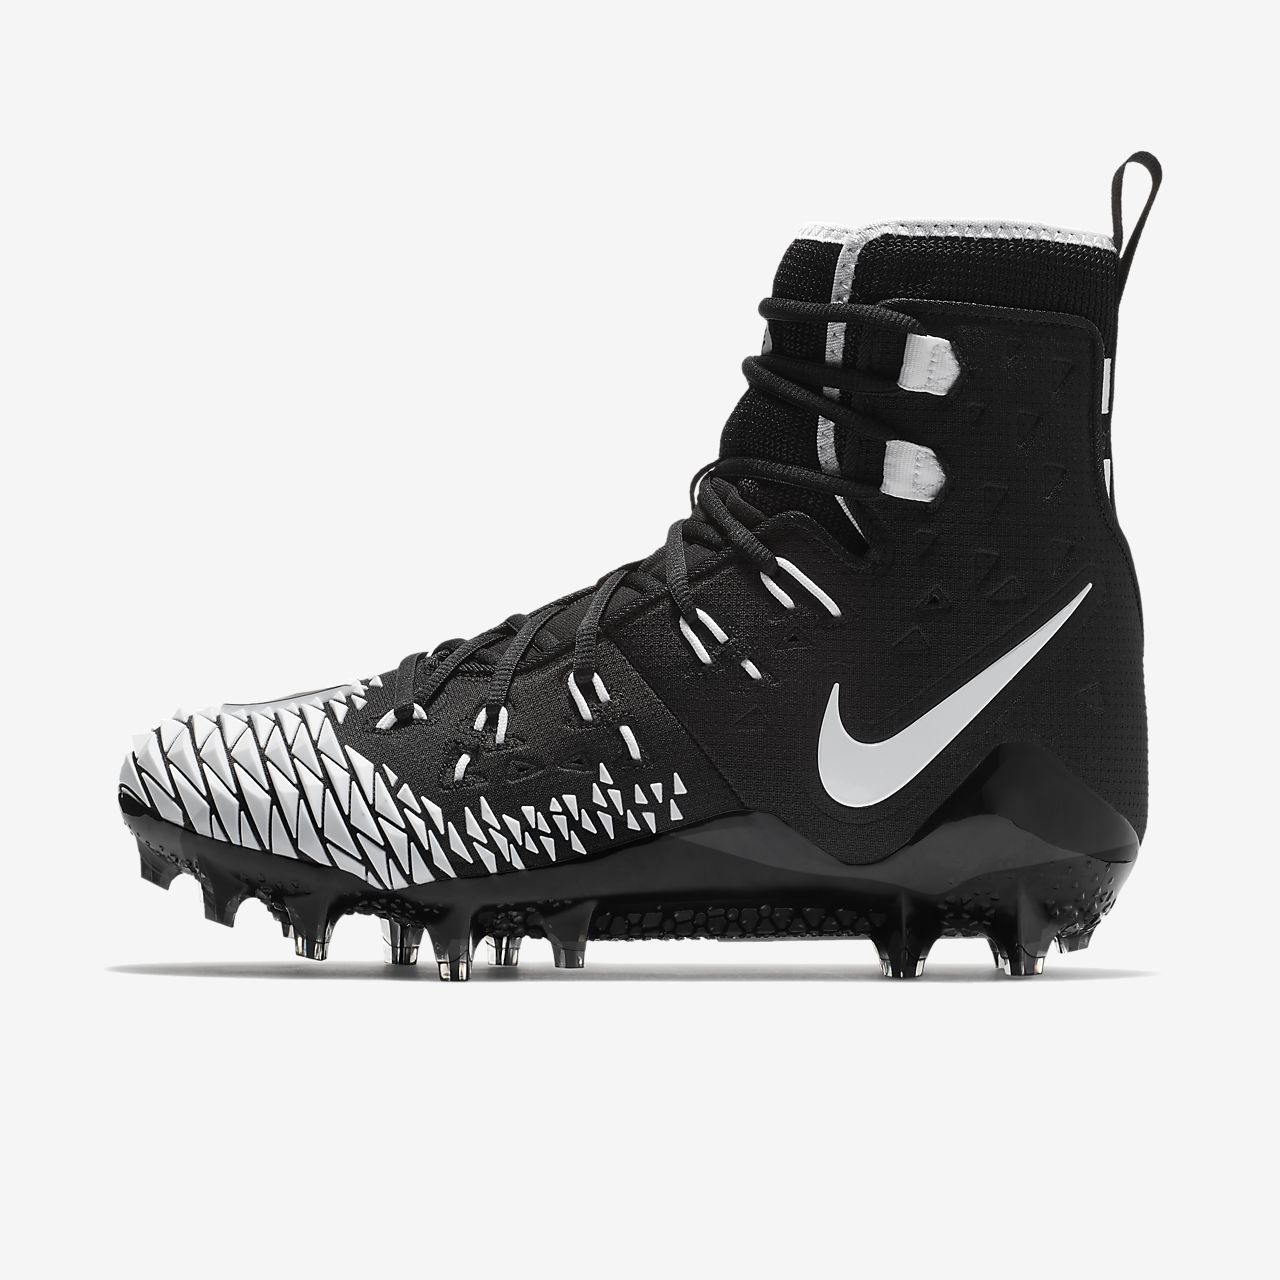 9db9c9ec5ca Nike Force Savage Elite TD Men s Football Cleat. Nike.com